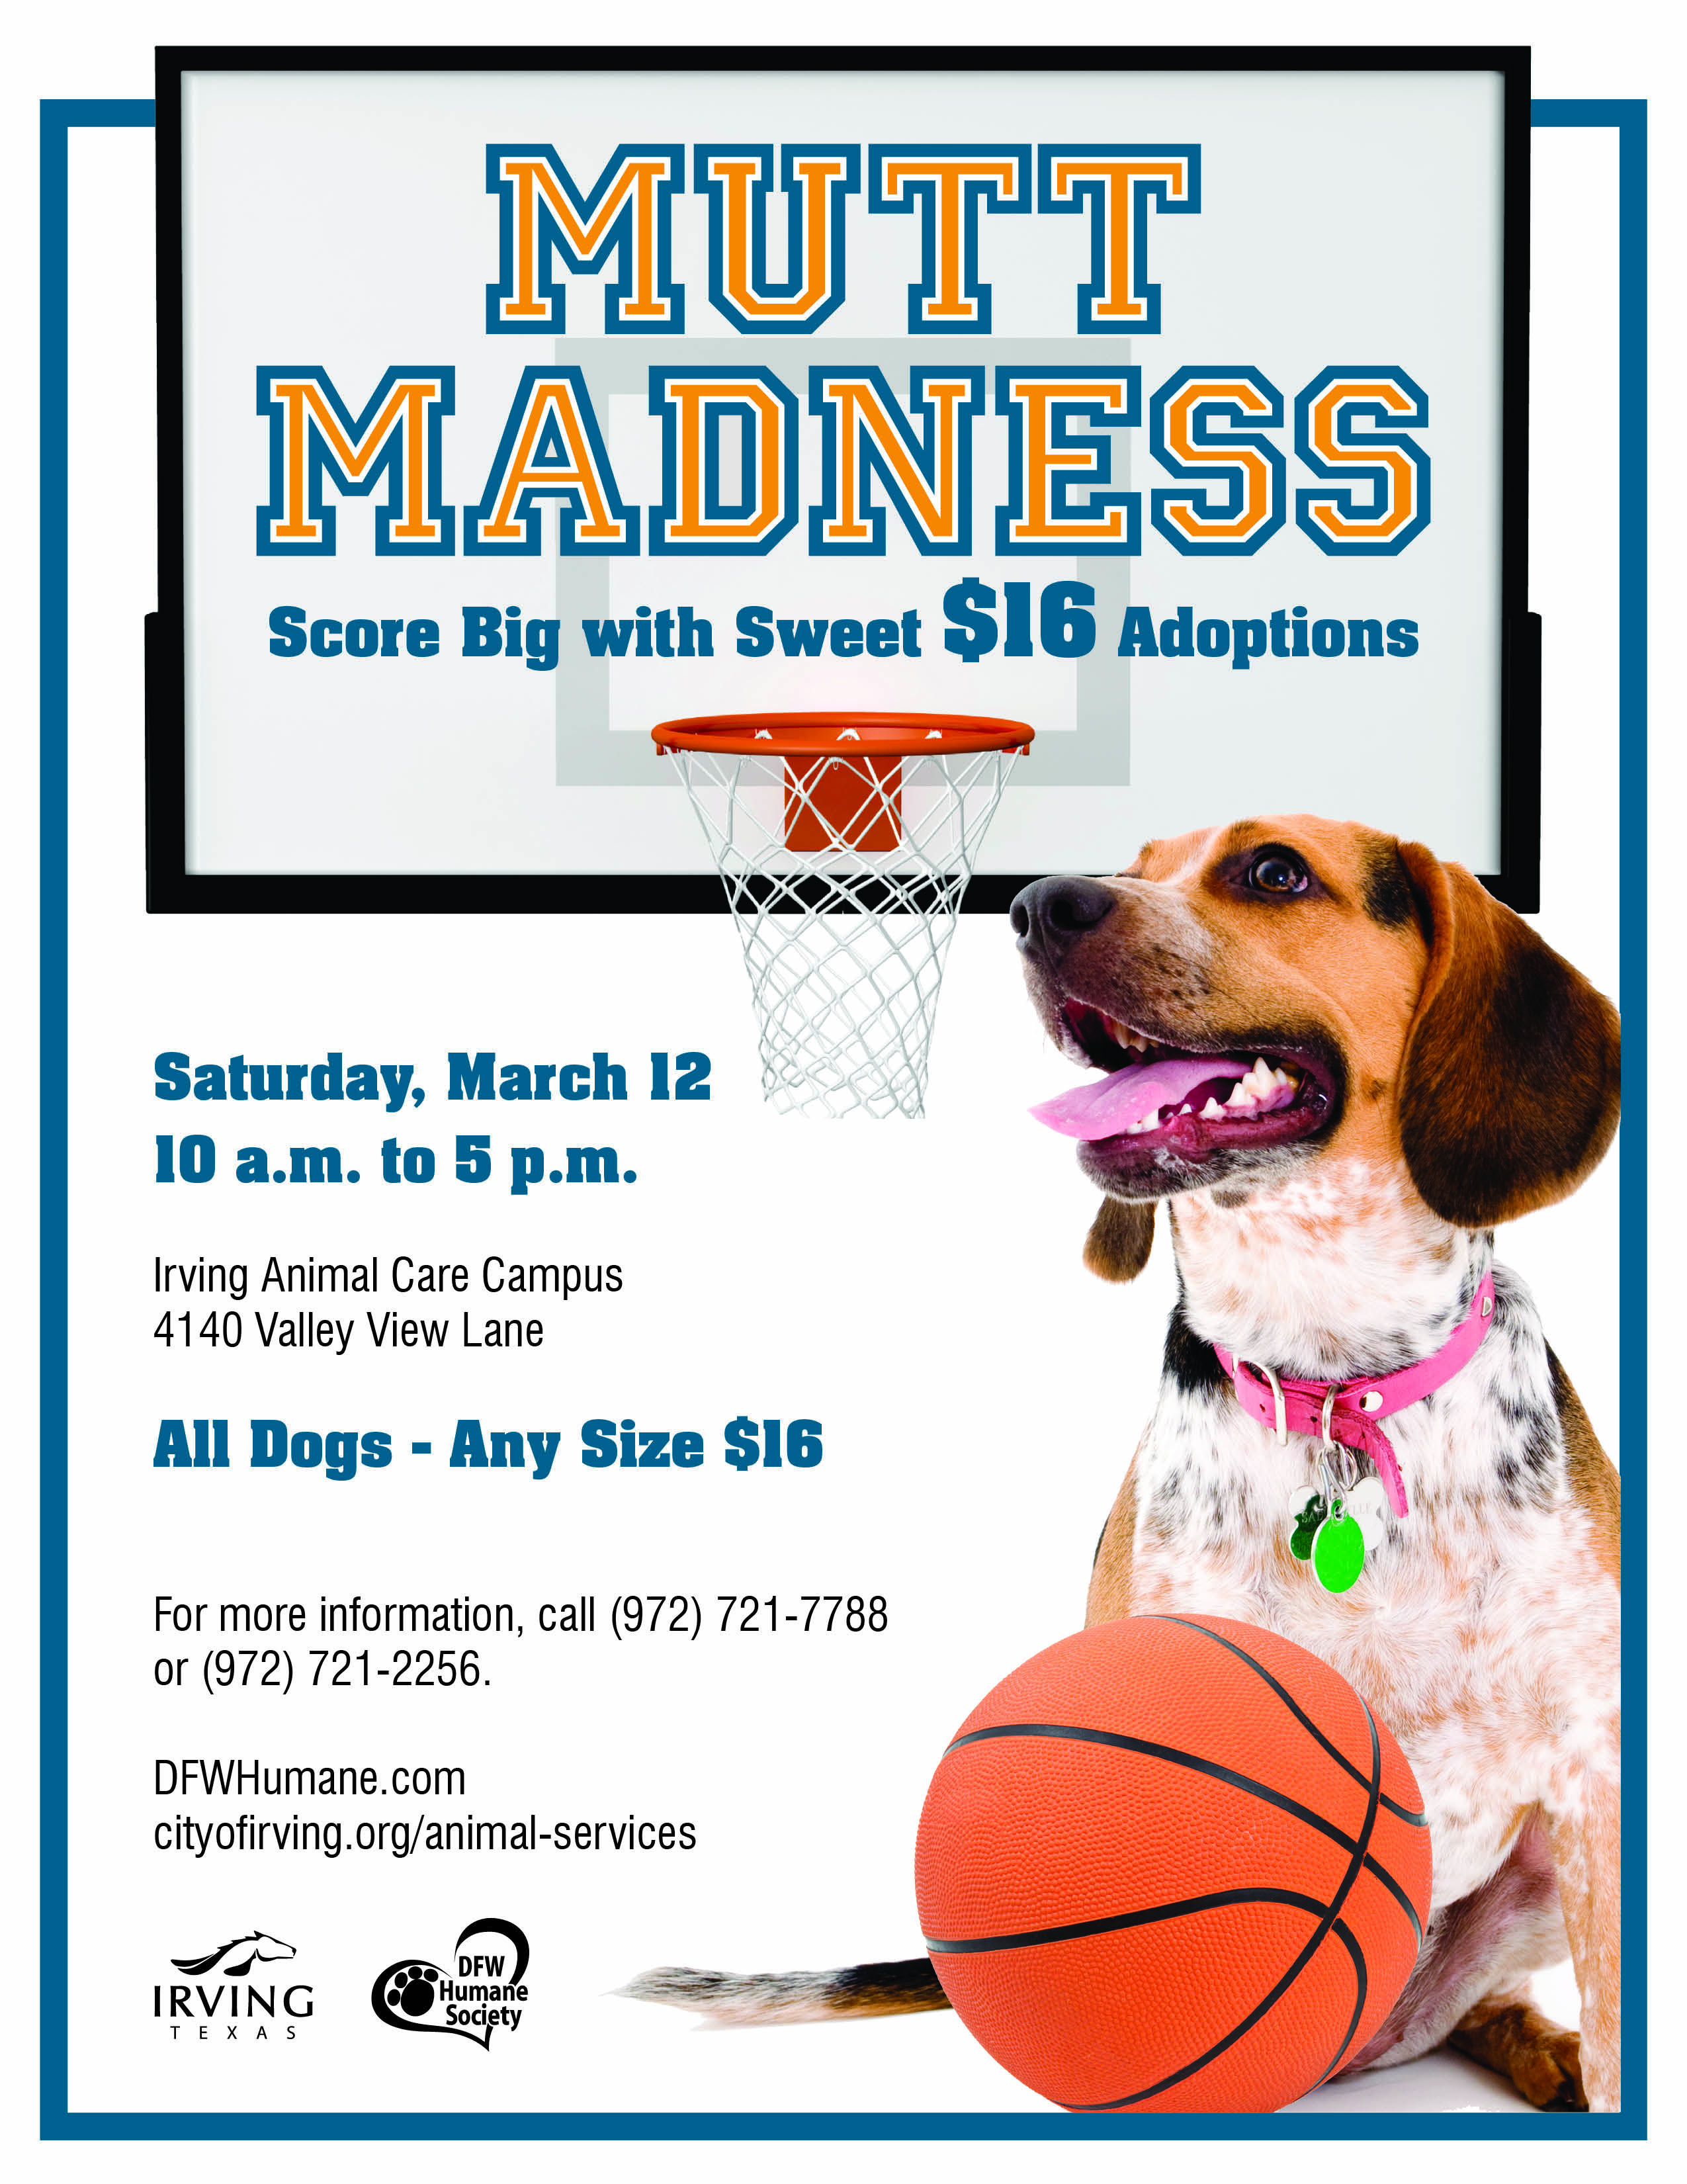 Sweet 16 adoptions on Saturday, March 12 from 105 No